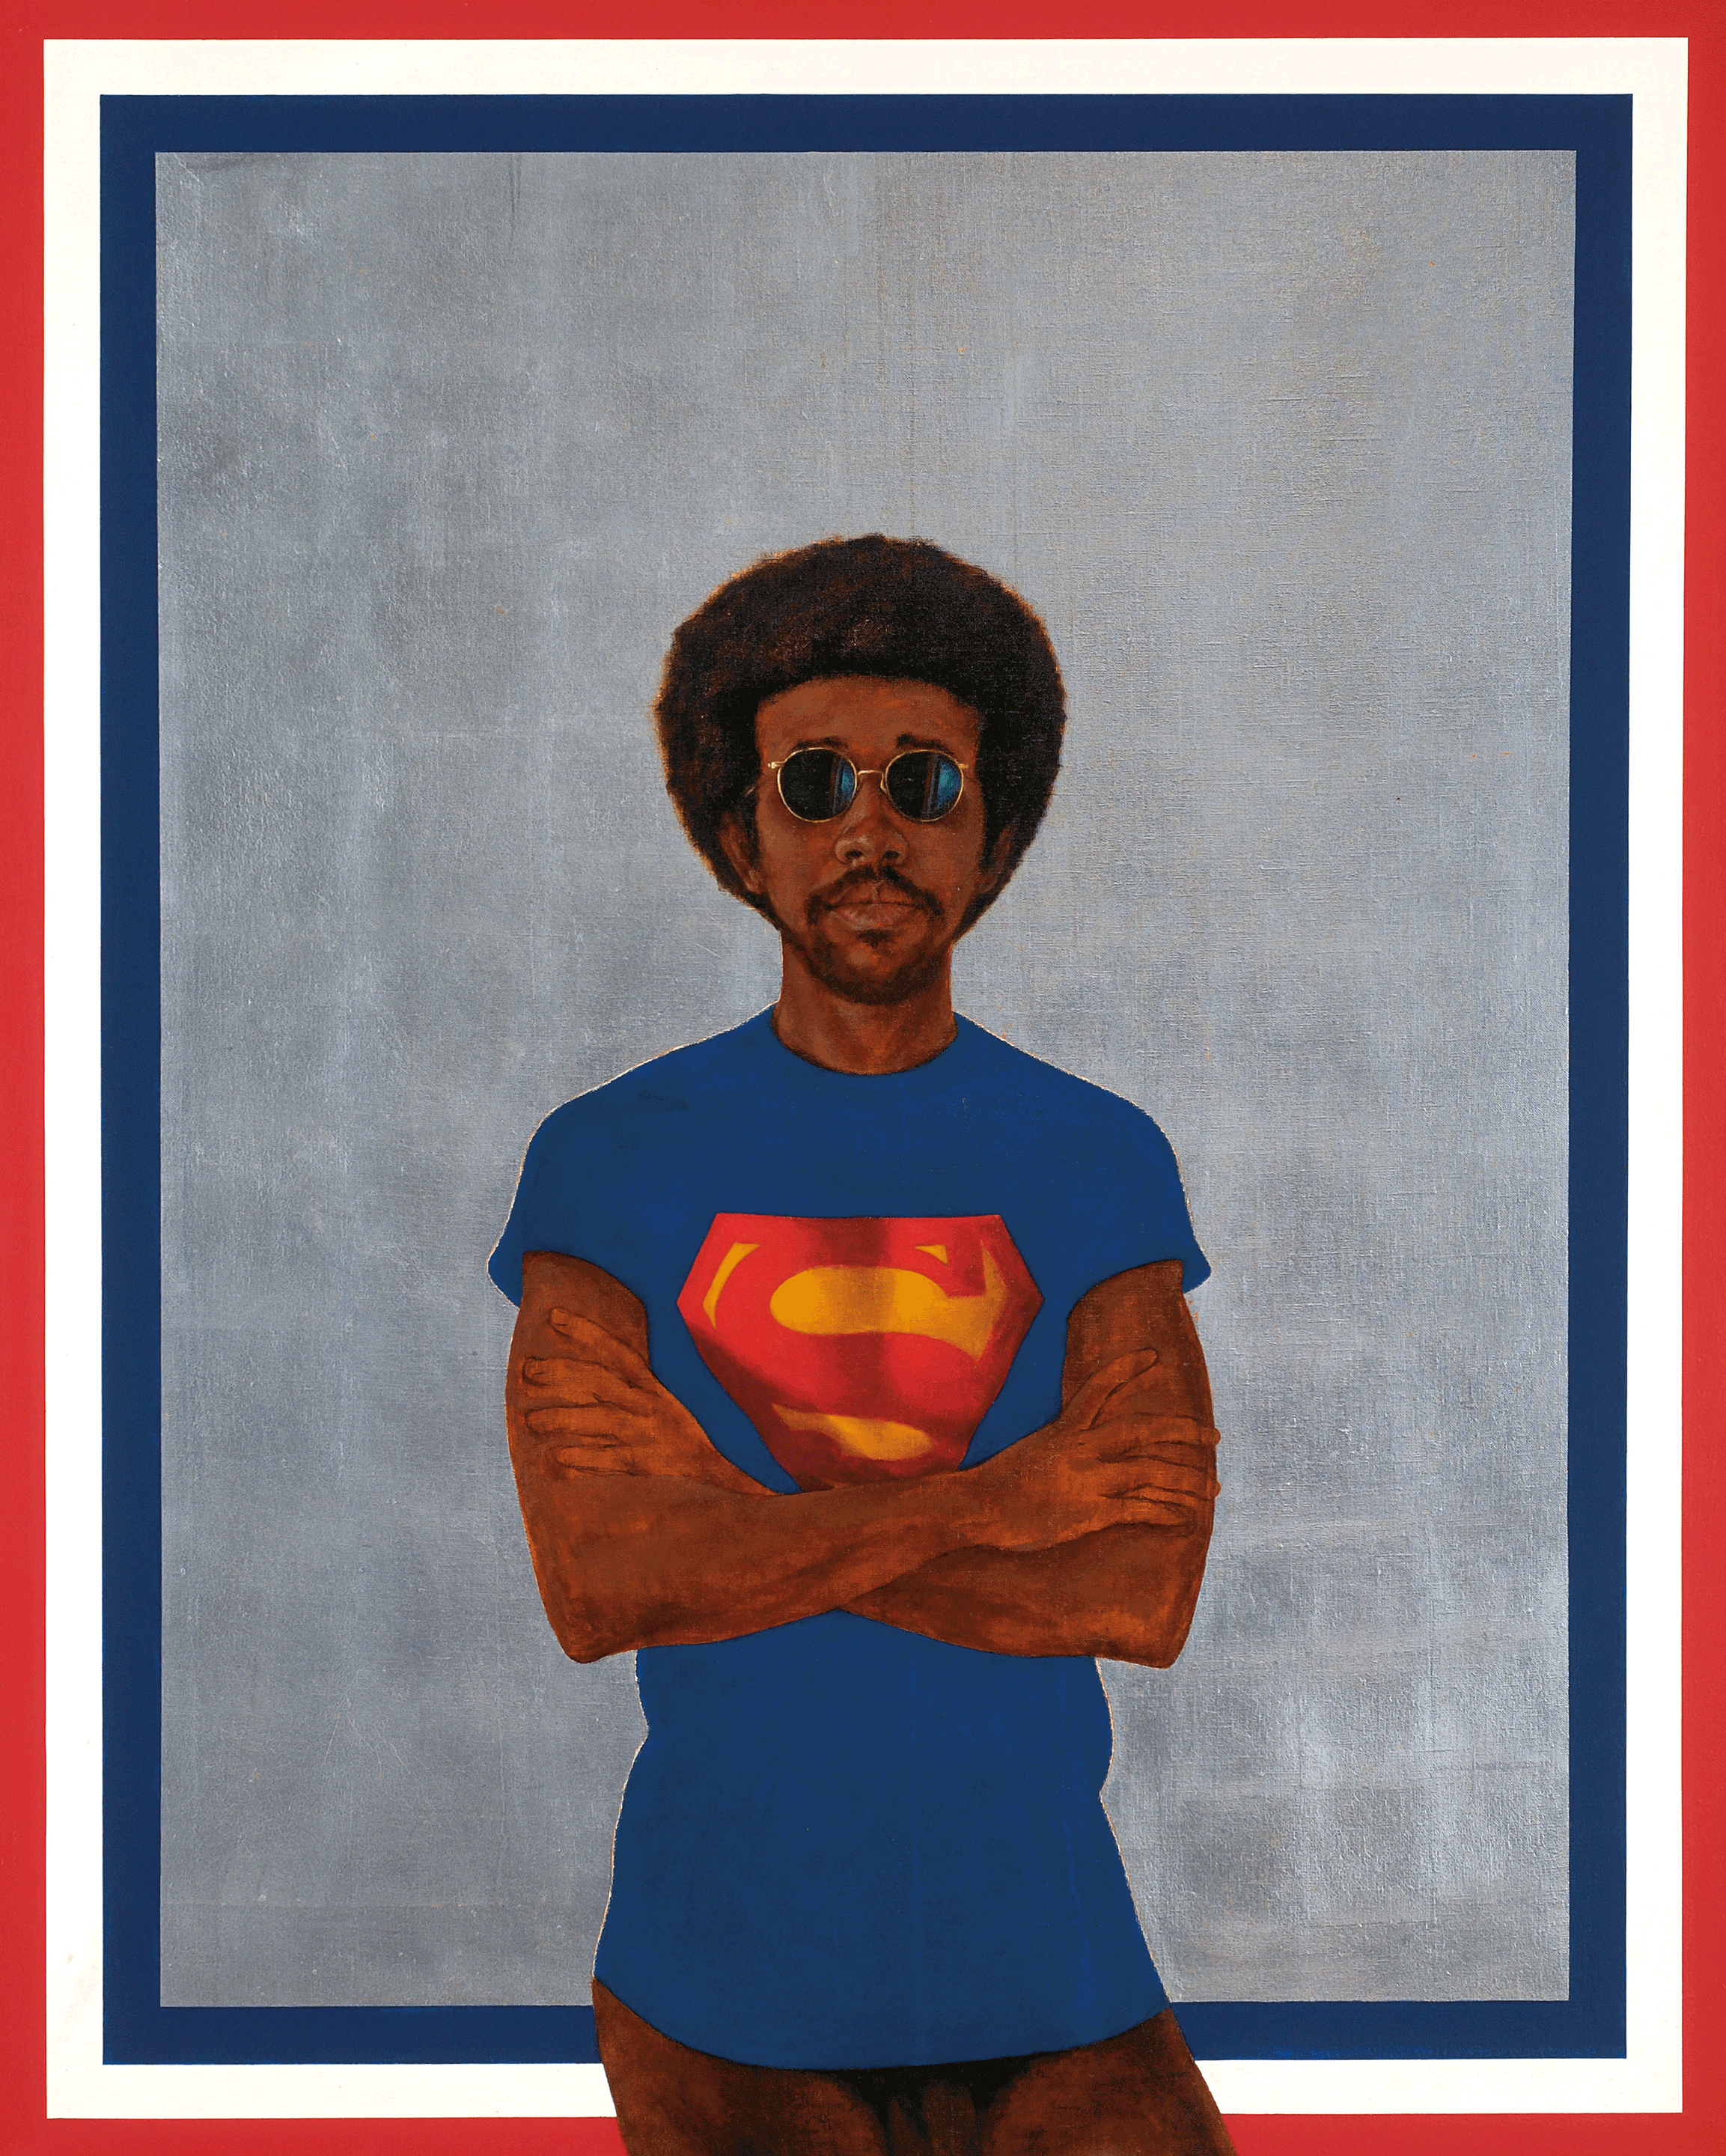 Icon for My Man Superman (Superman Never Saved any Black People--Bobby Seale) von Barkley L. Hendricks, 1969, Collection of Liz and Eric Lefkofsky, Copyright: Barkley L. Hendricks, Courtesy of the artist and Jack Shainman Gallery, New York